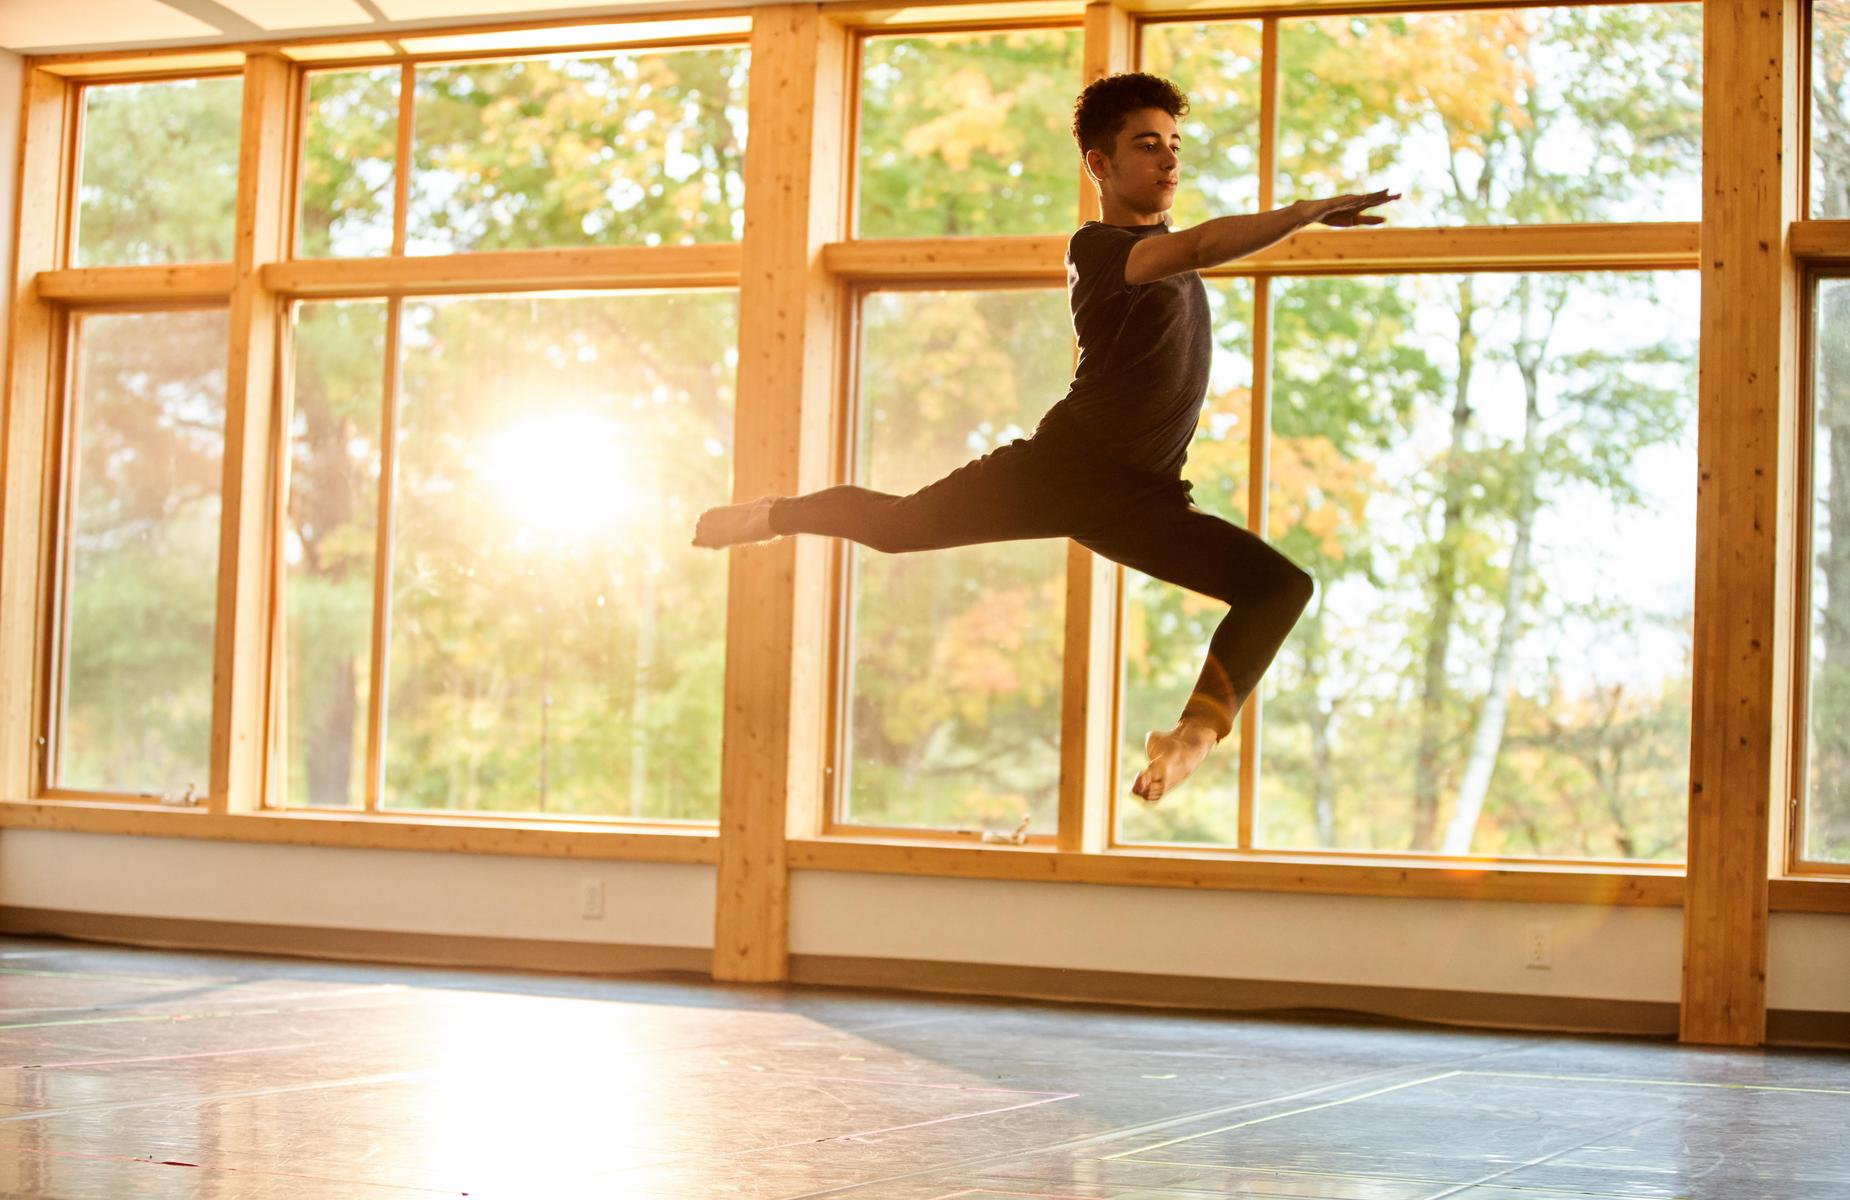 A student leaping in the dance studio.